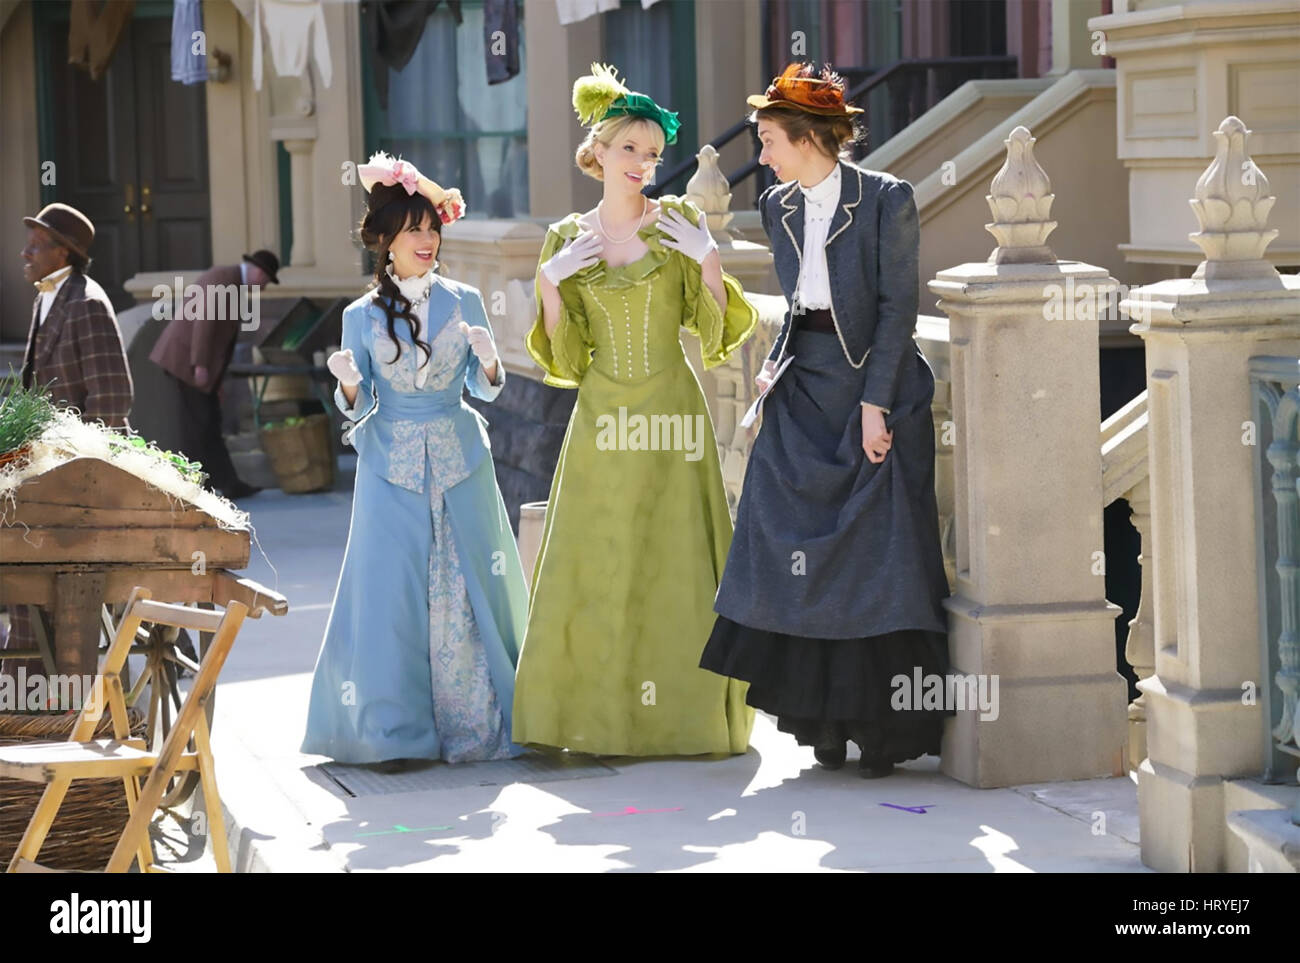 ANOTHER PERIOD Comedy Central TV series with from left Natasha Leggero, Riki Lindhome, Lauren Lapkus - Stock Image